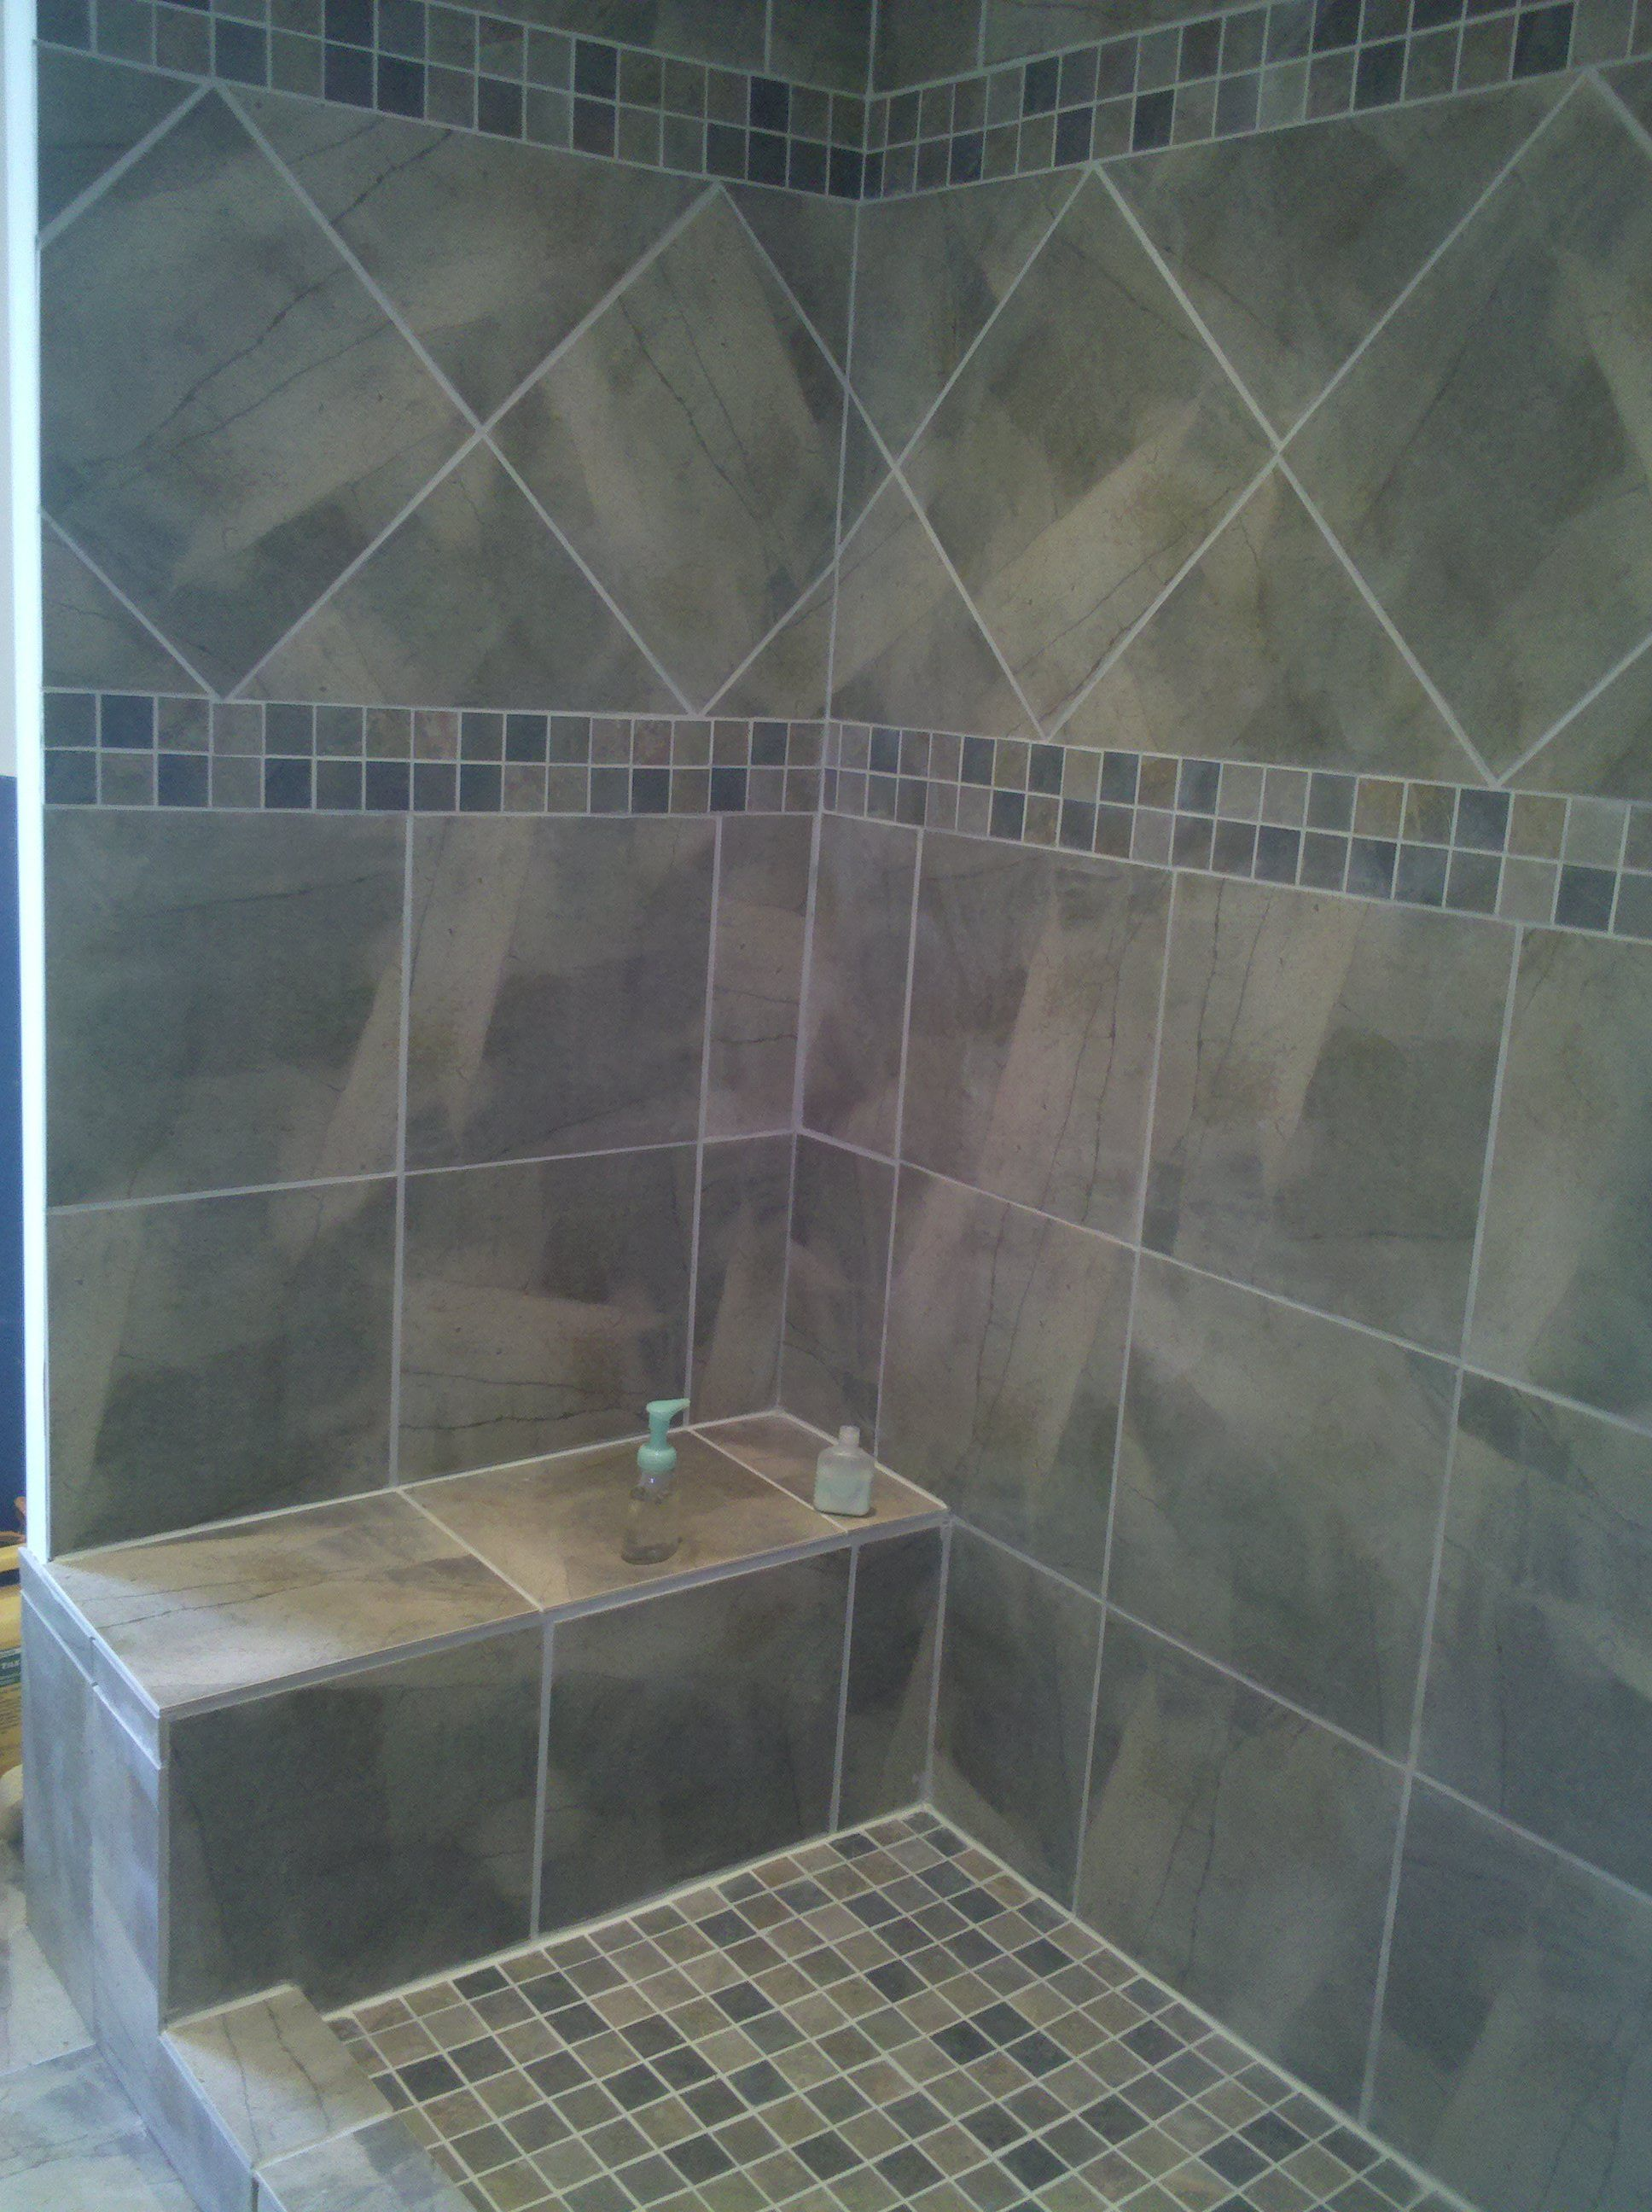 Tile Shower Designs bathroom tile design | custom tile ideas | tub shower tile photos